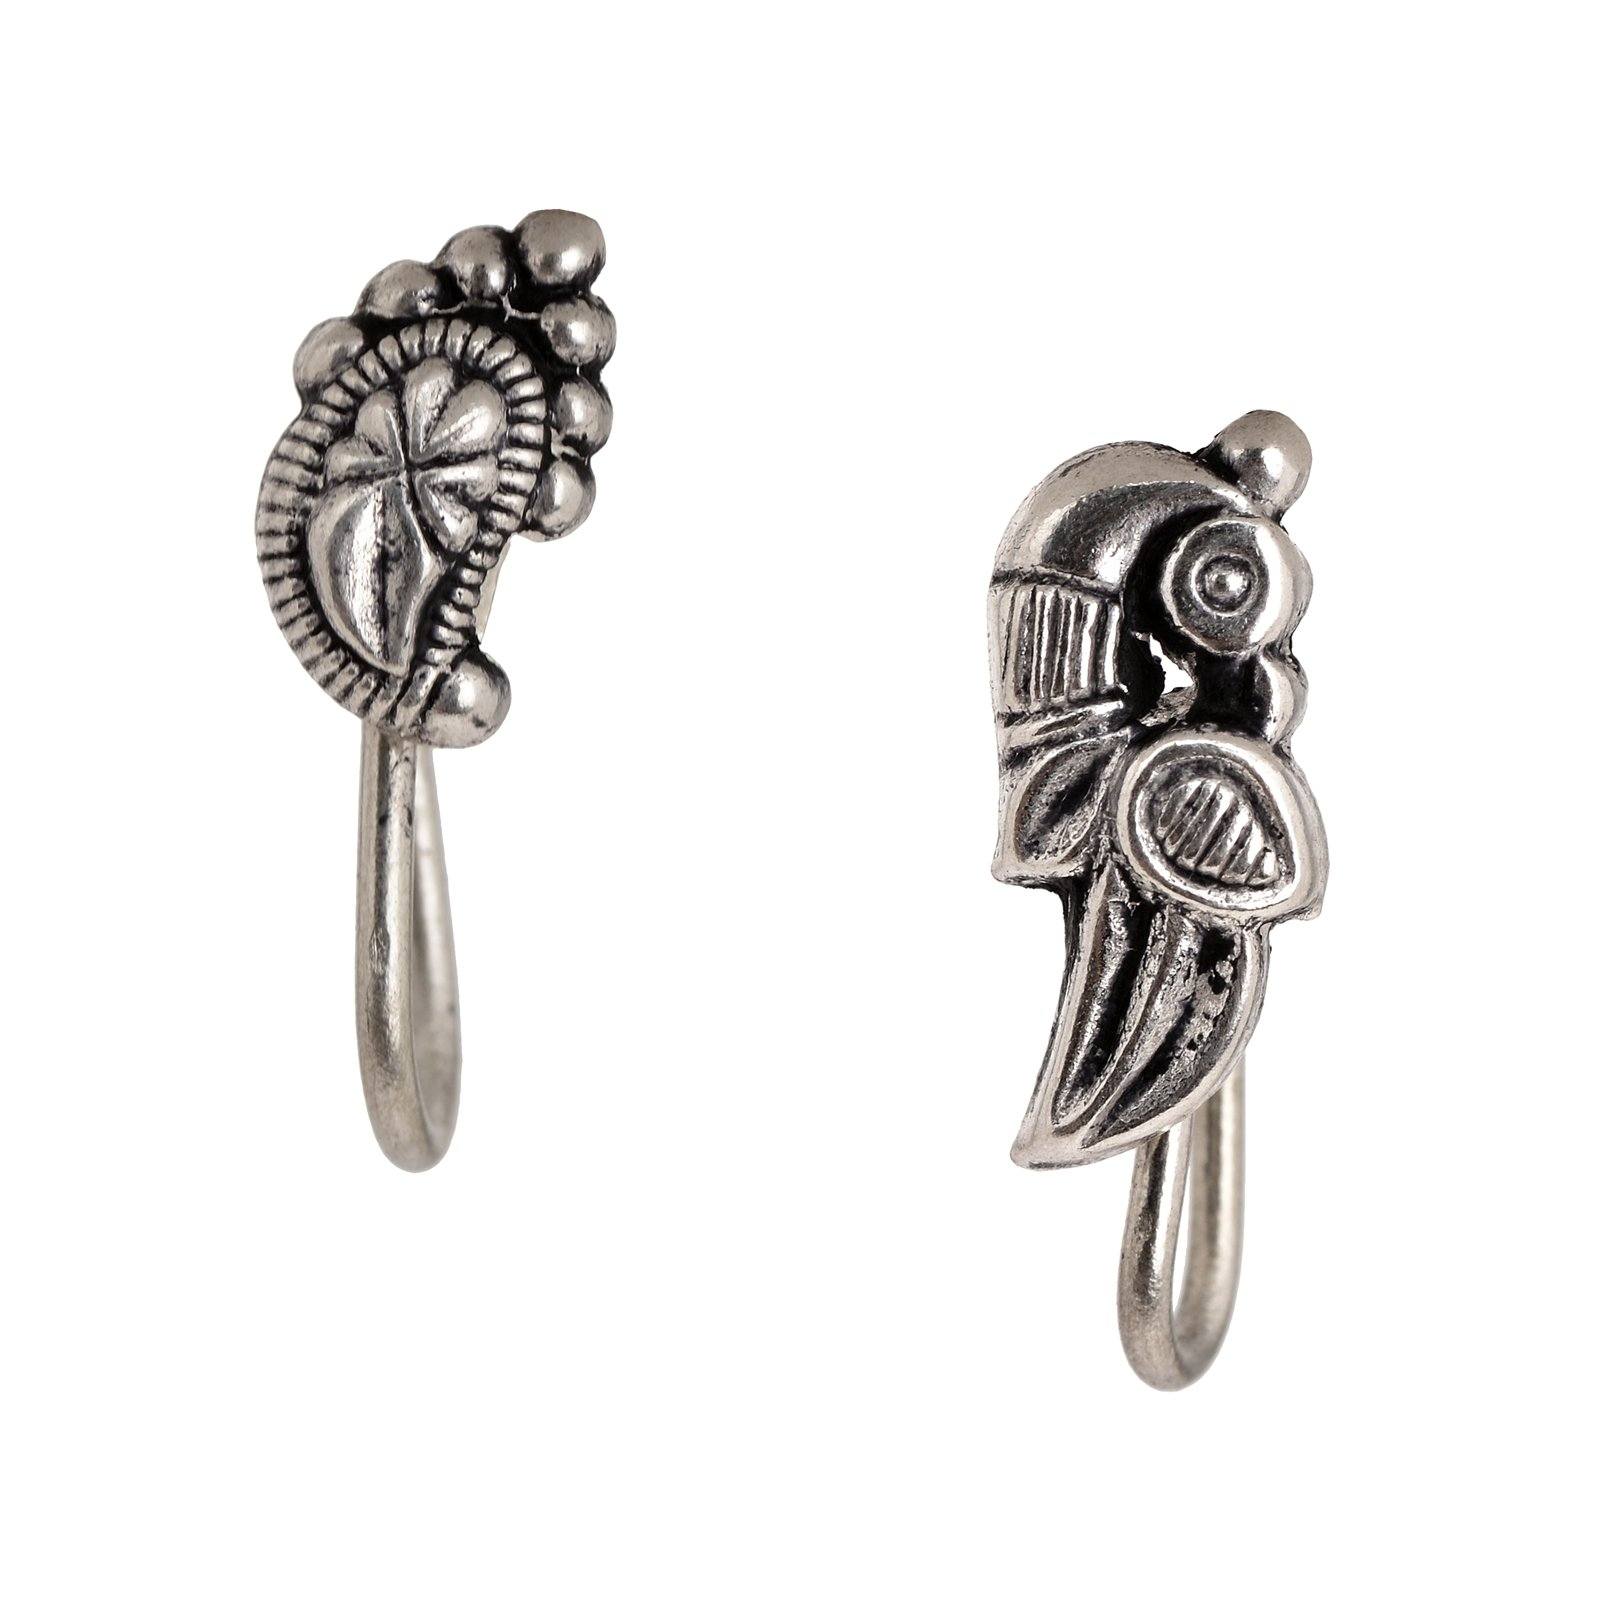 Tjori Peacock Shaped Nose Pins Handcrafted In .925 Sterling Silver Set of 2